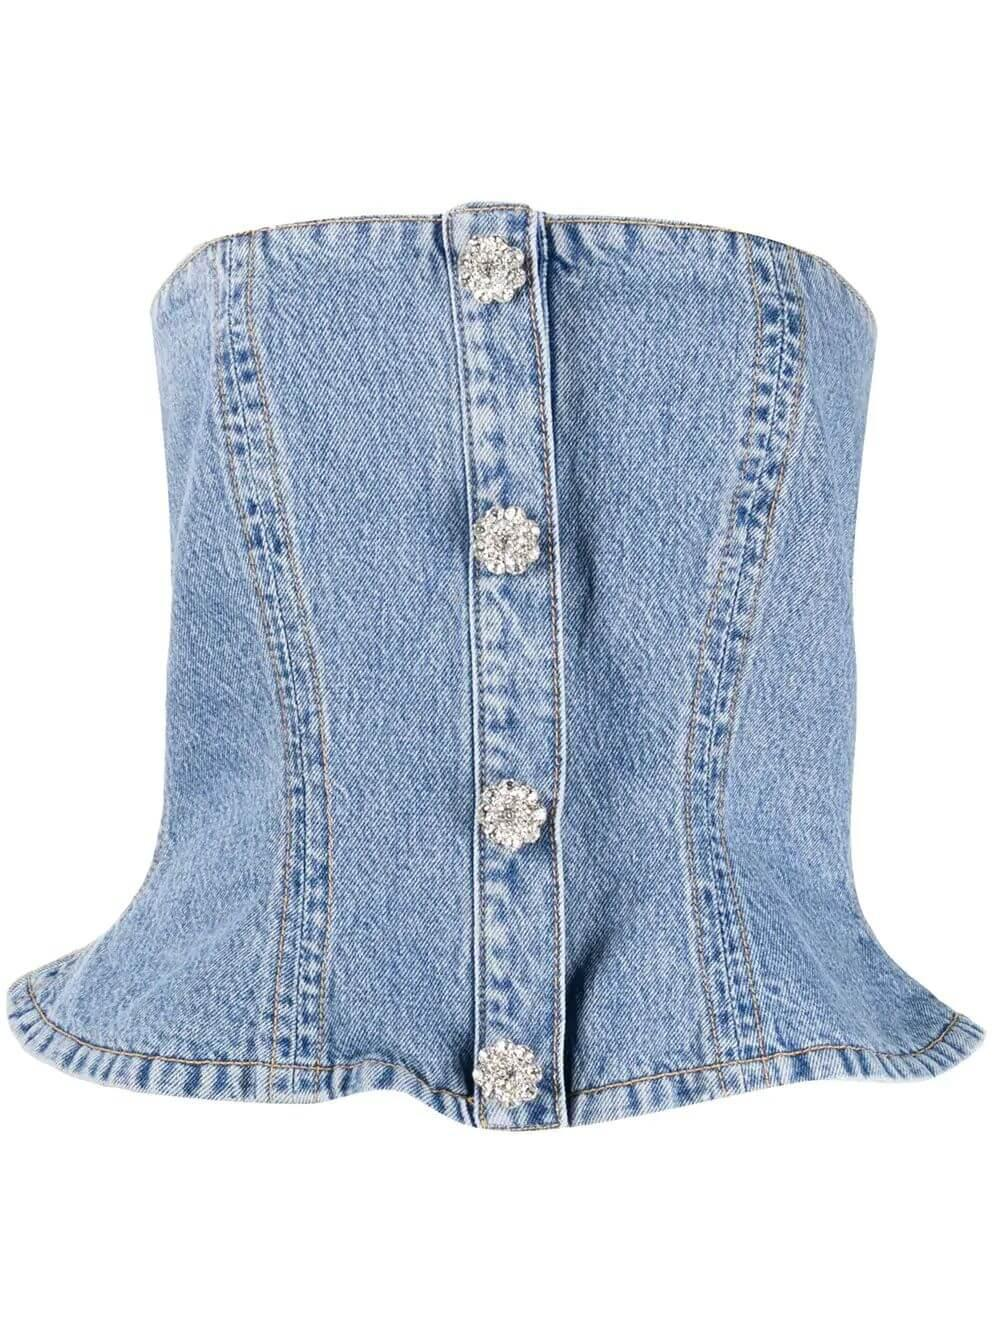 Denim Bandeau Top With Crystal Buttons